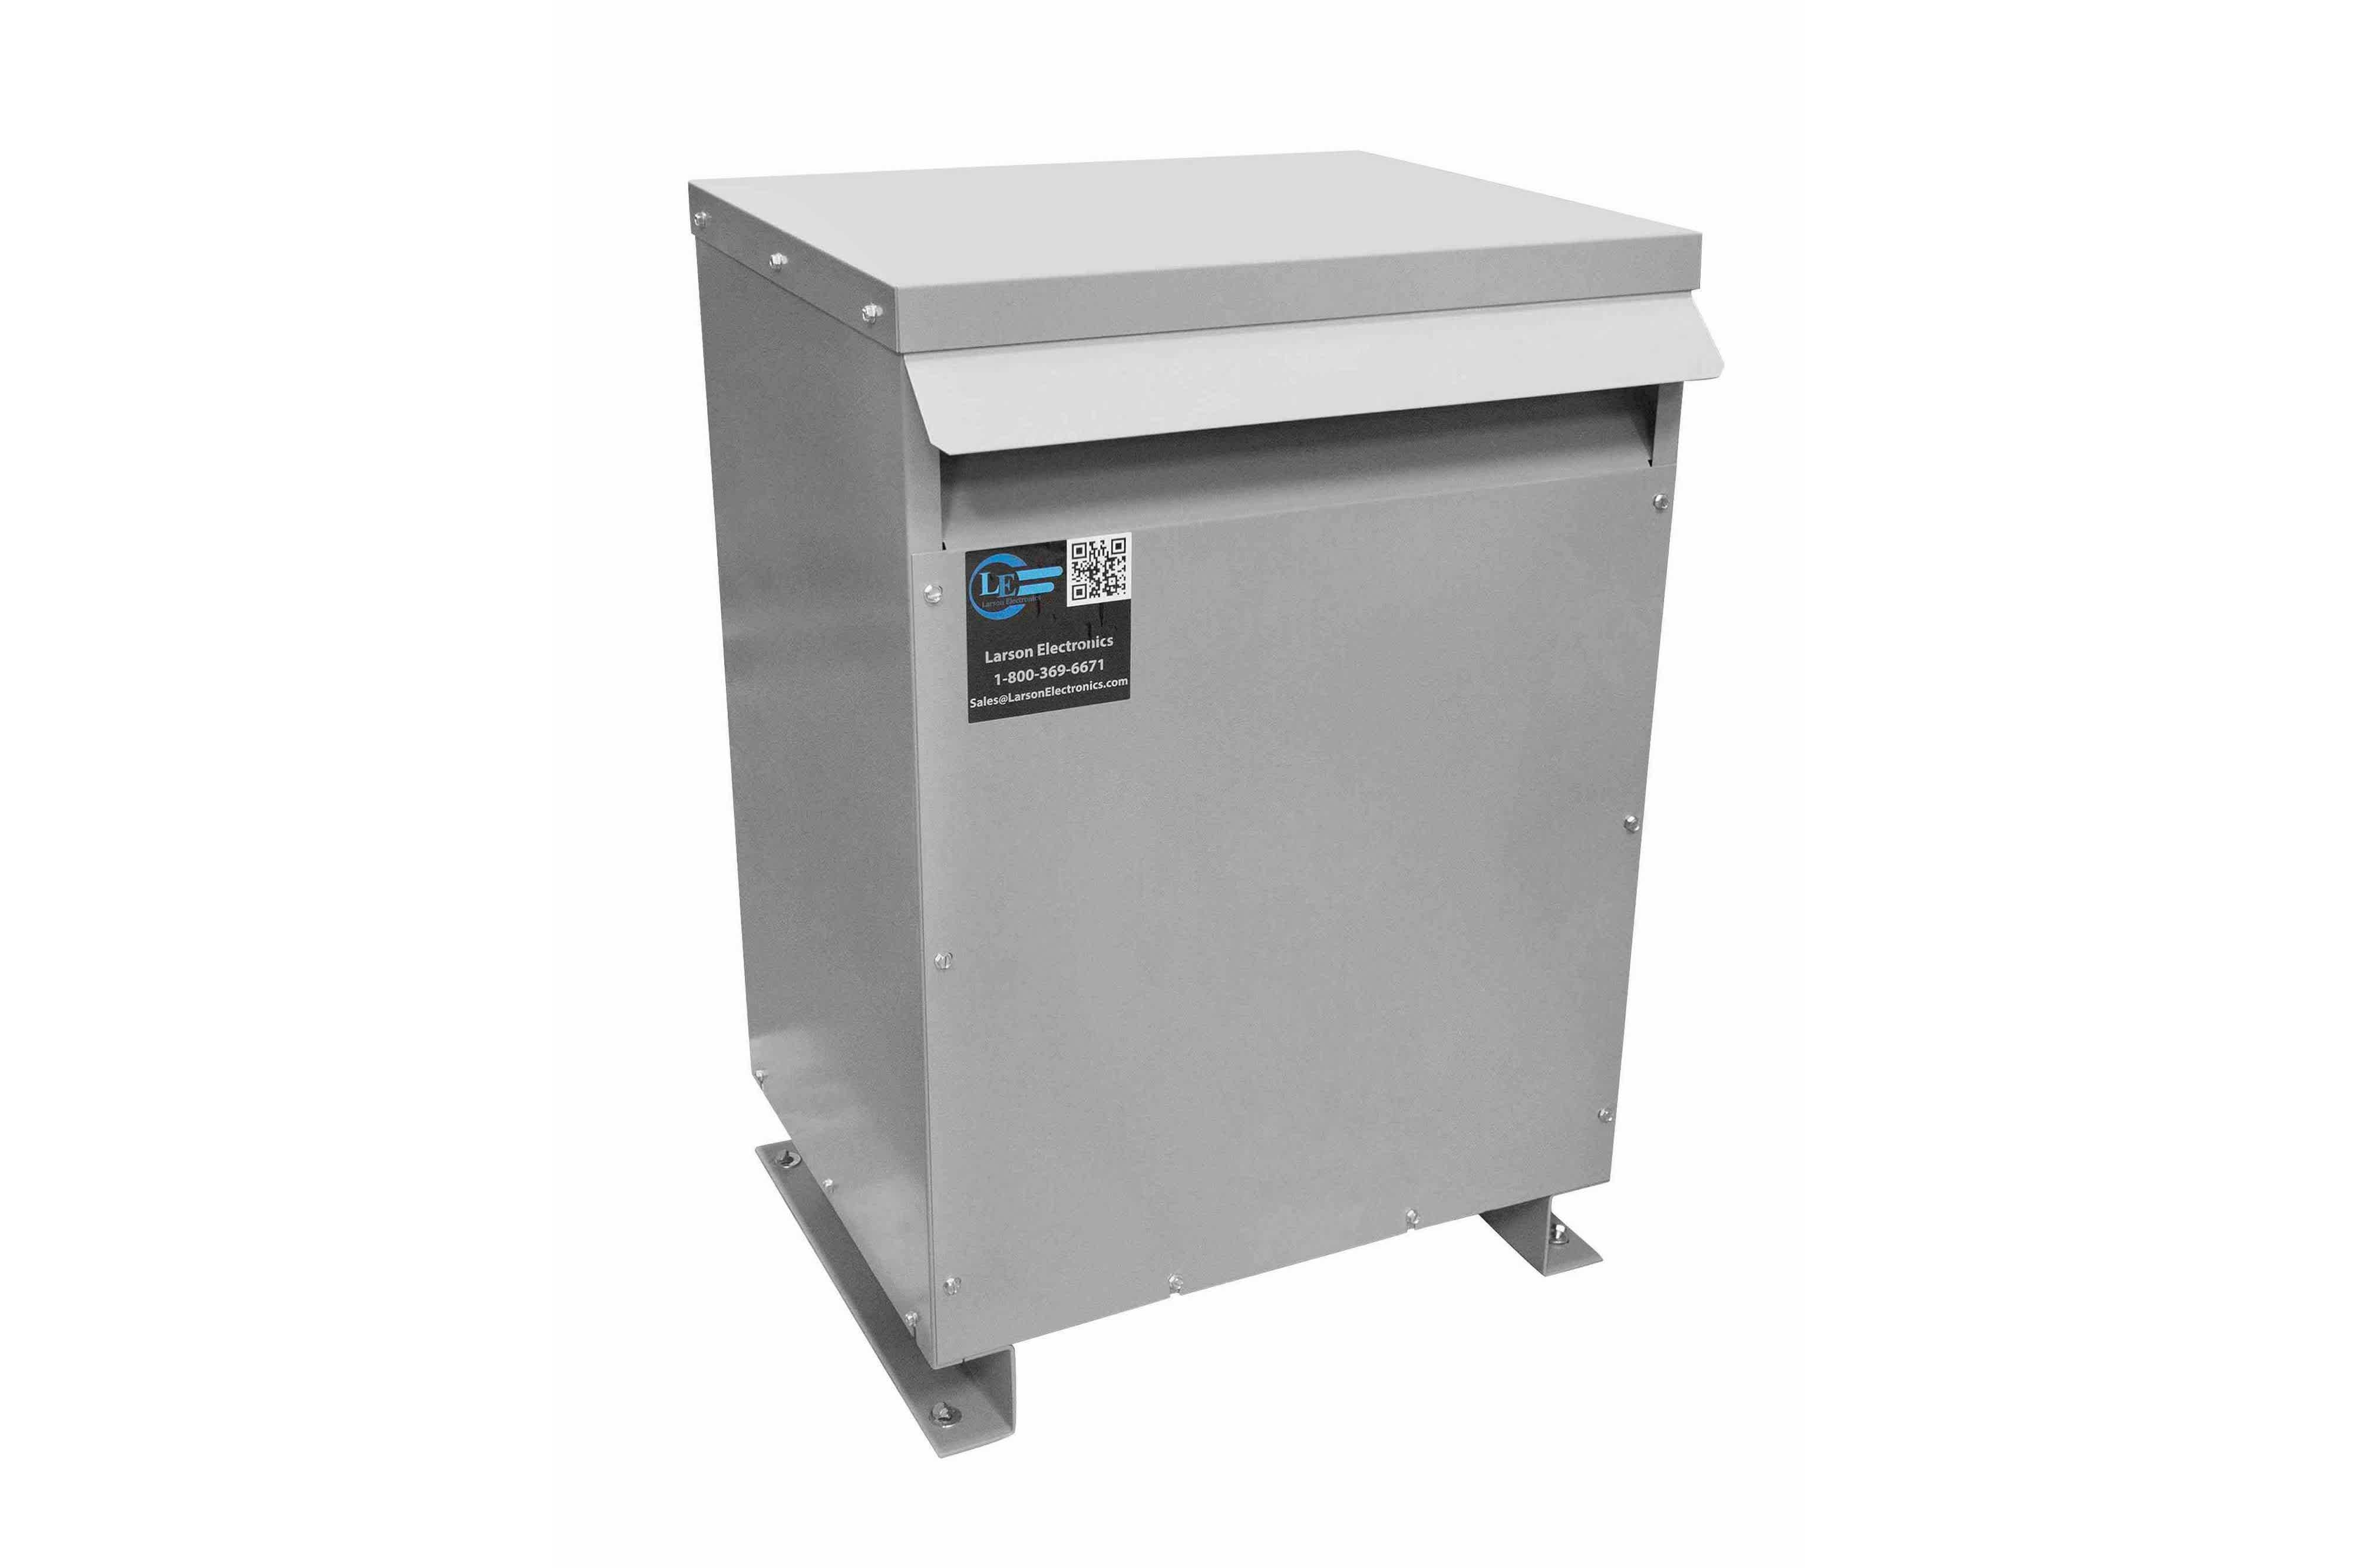 32.5 kVA 3PH Isolation Transformer, 208V Wye Primary, 208V Delta Secondary, N3R, Ventilated, 60 Hz